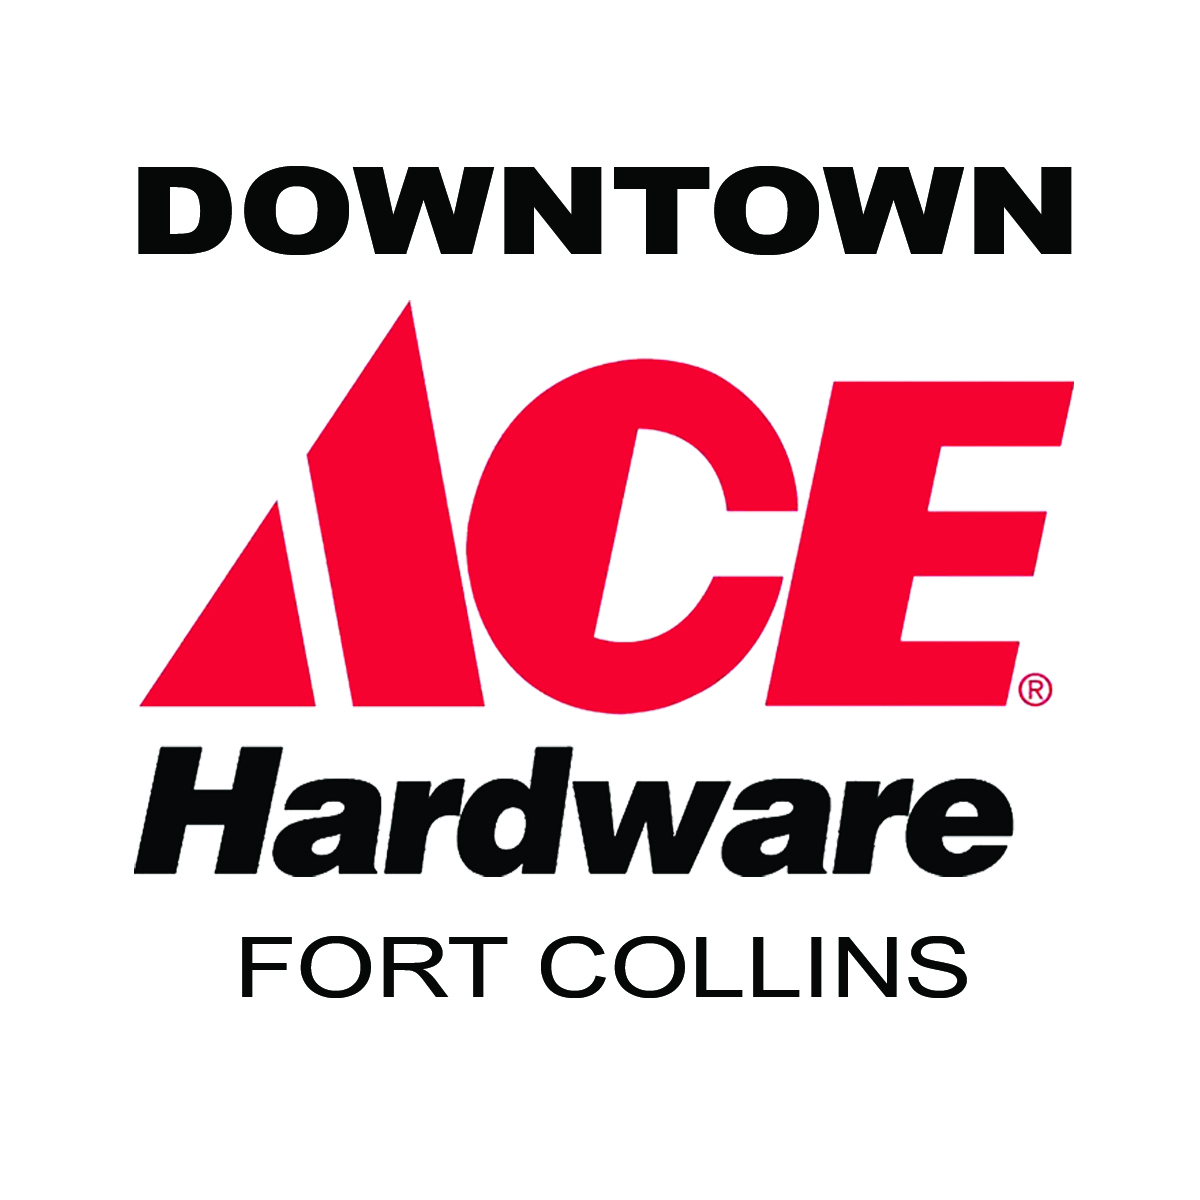 Downtown Ace Fort COllins